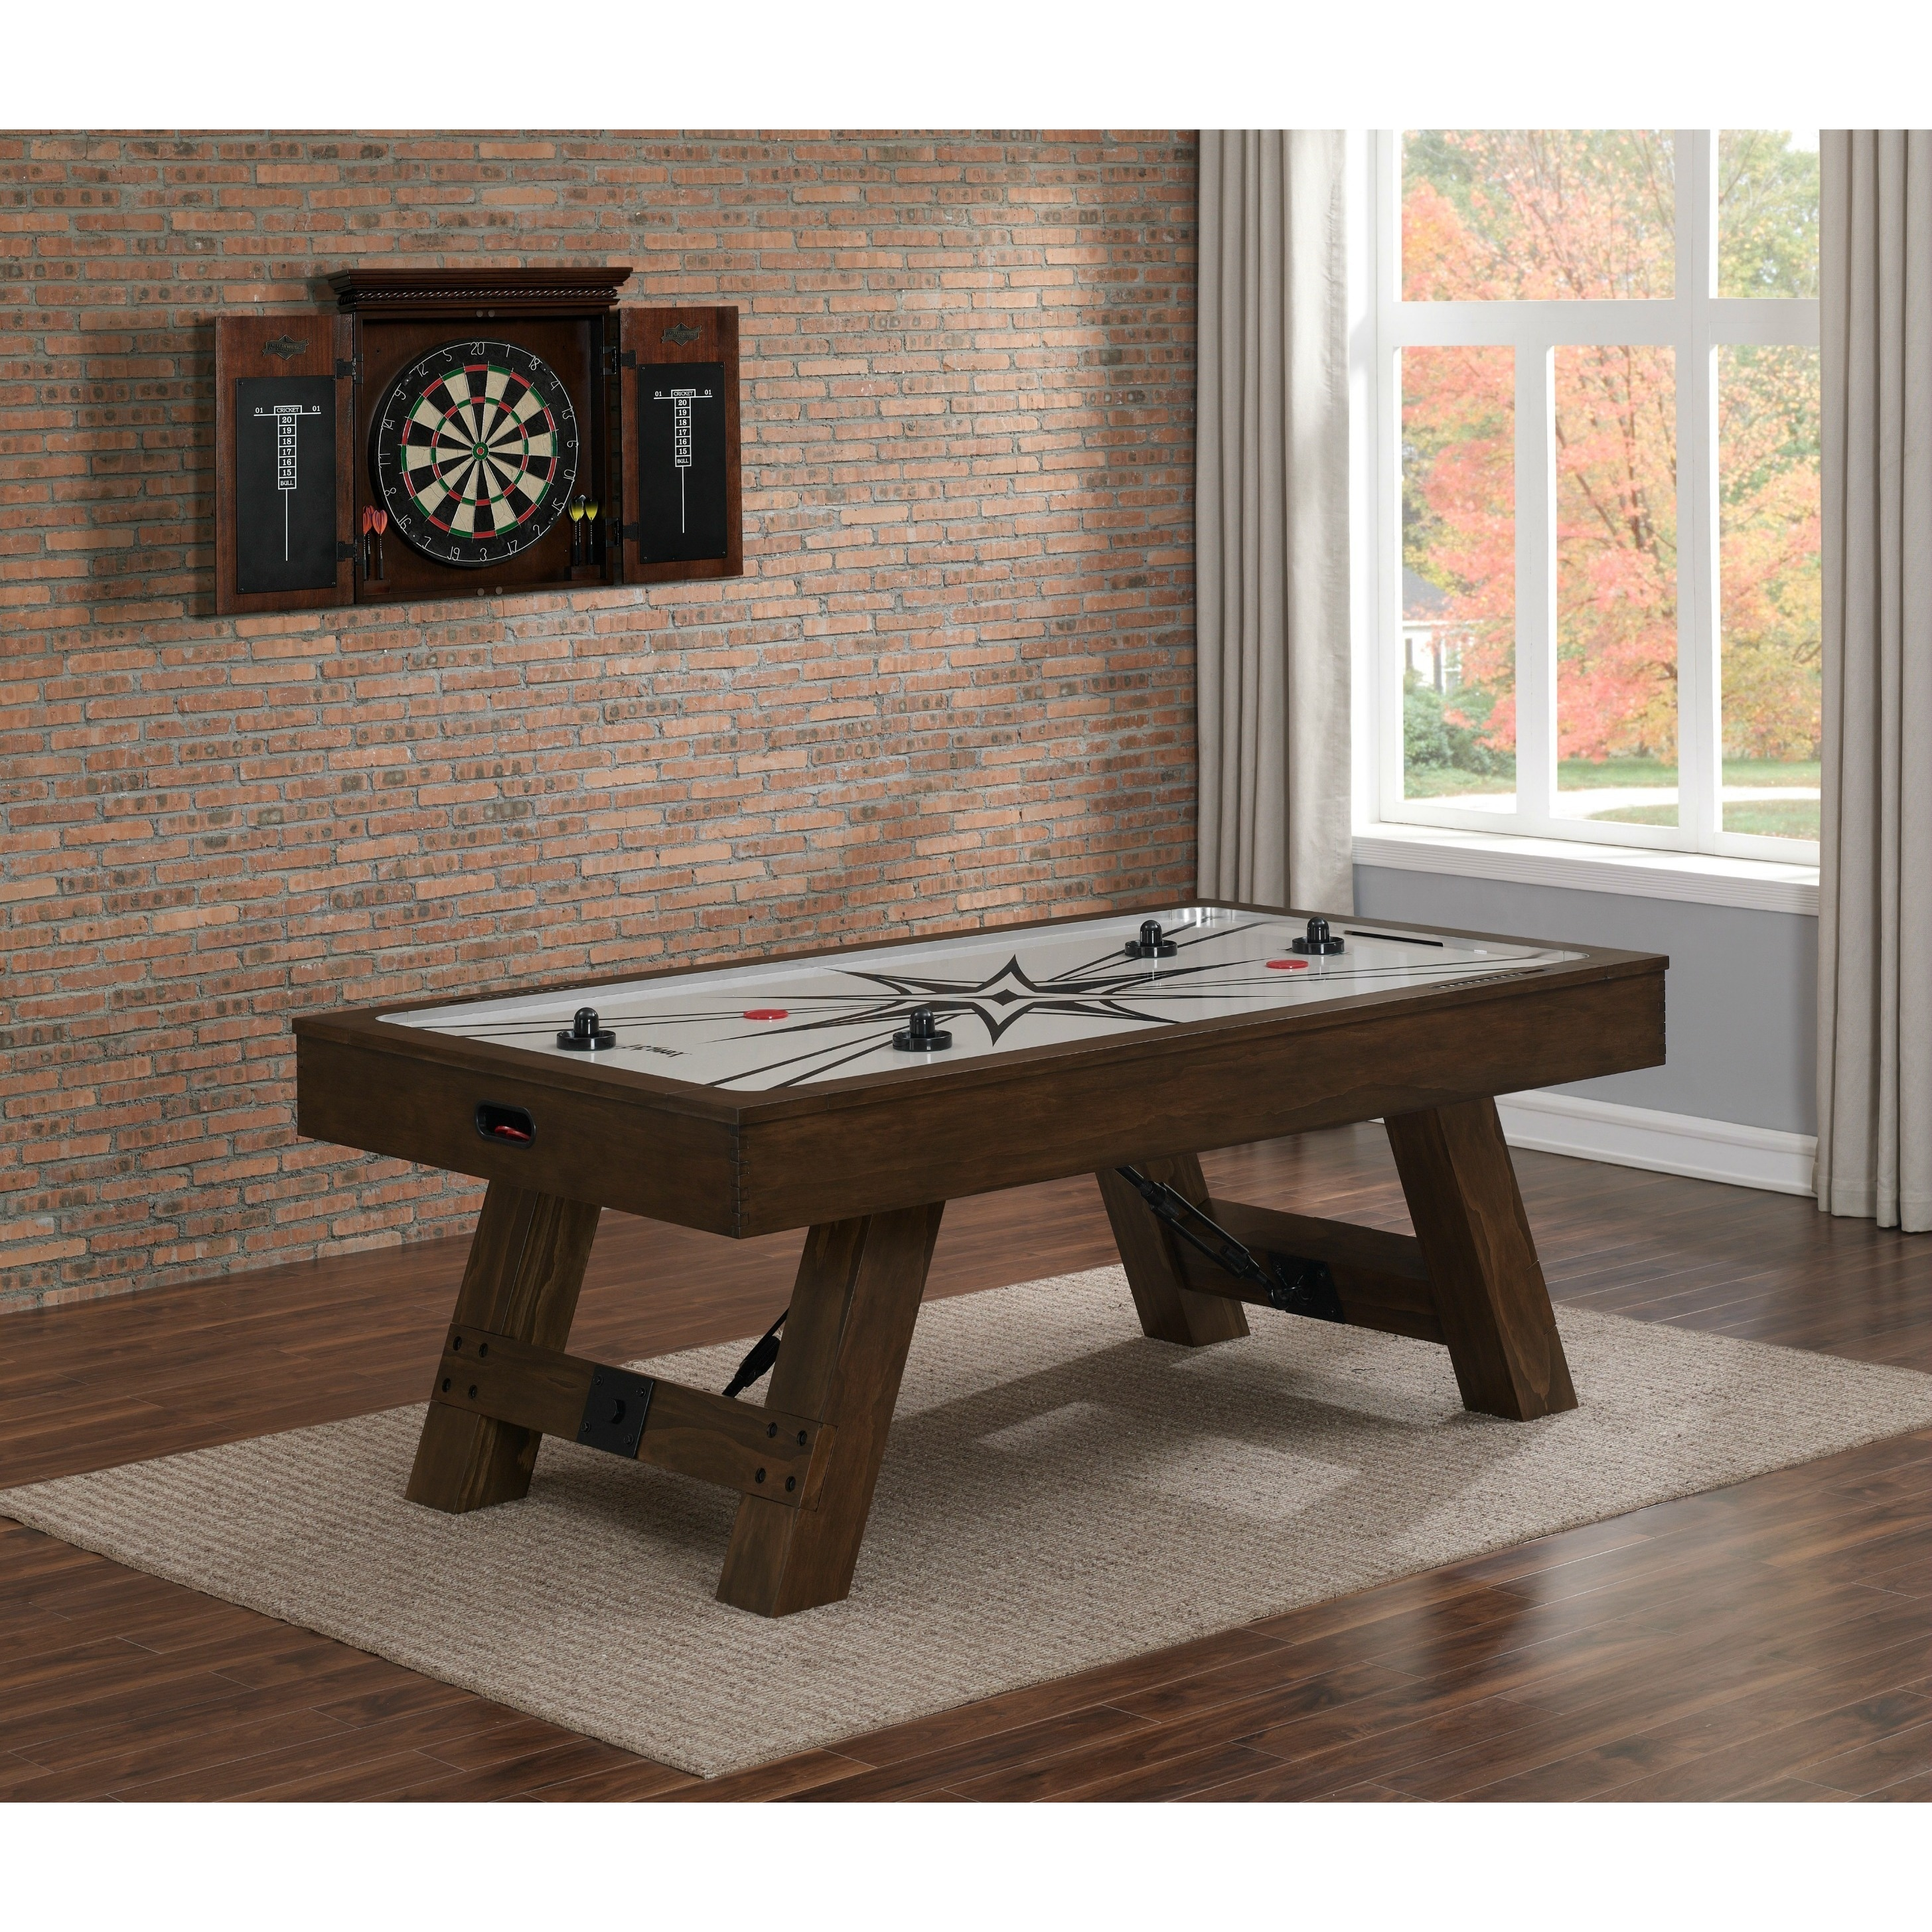 Attirant Savannah Brown Wood Air Hockey Table   Free Shipping Today   Overstock    22919301